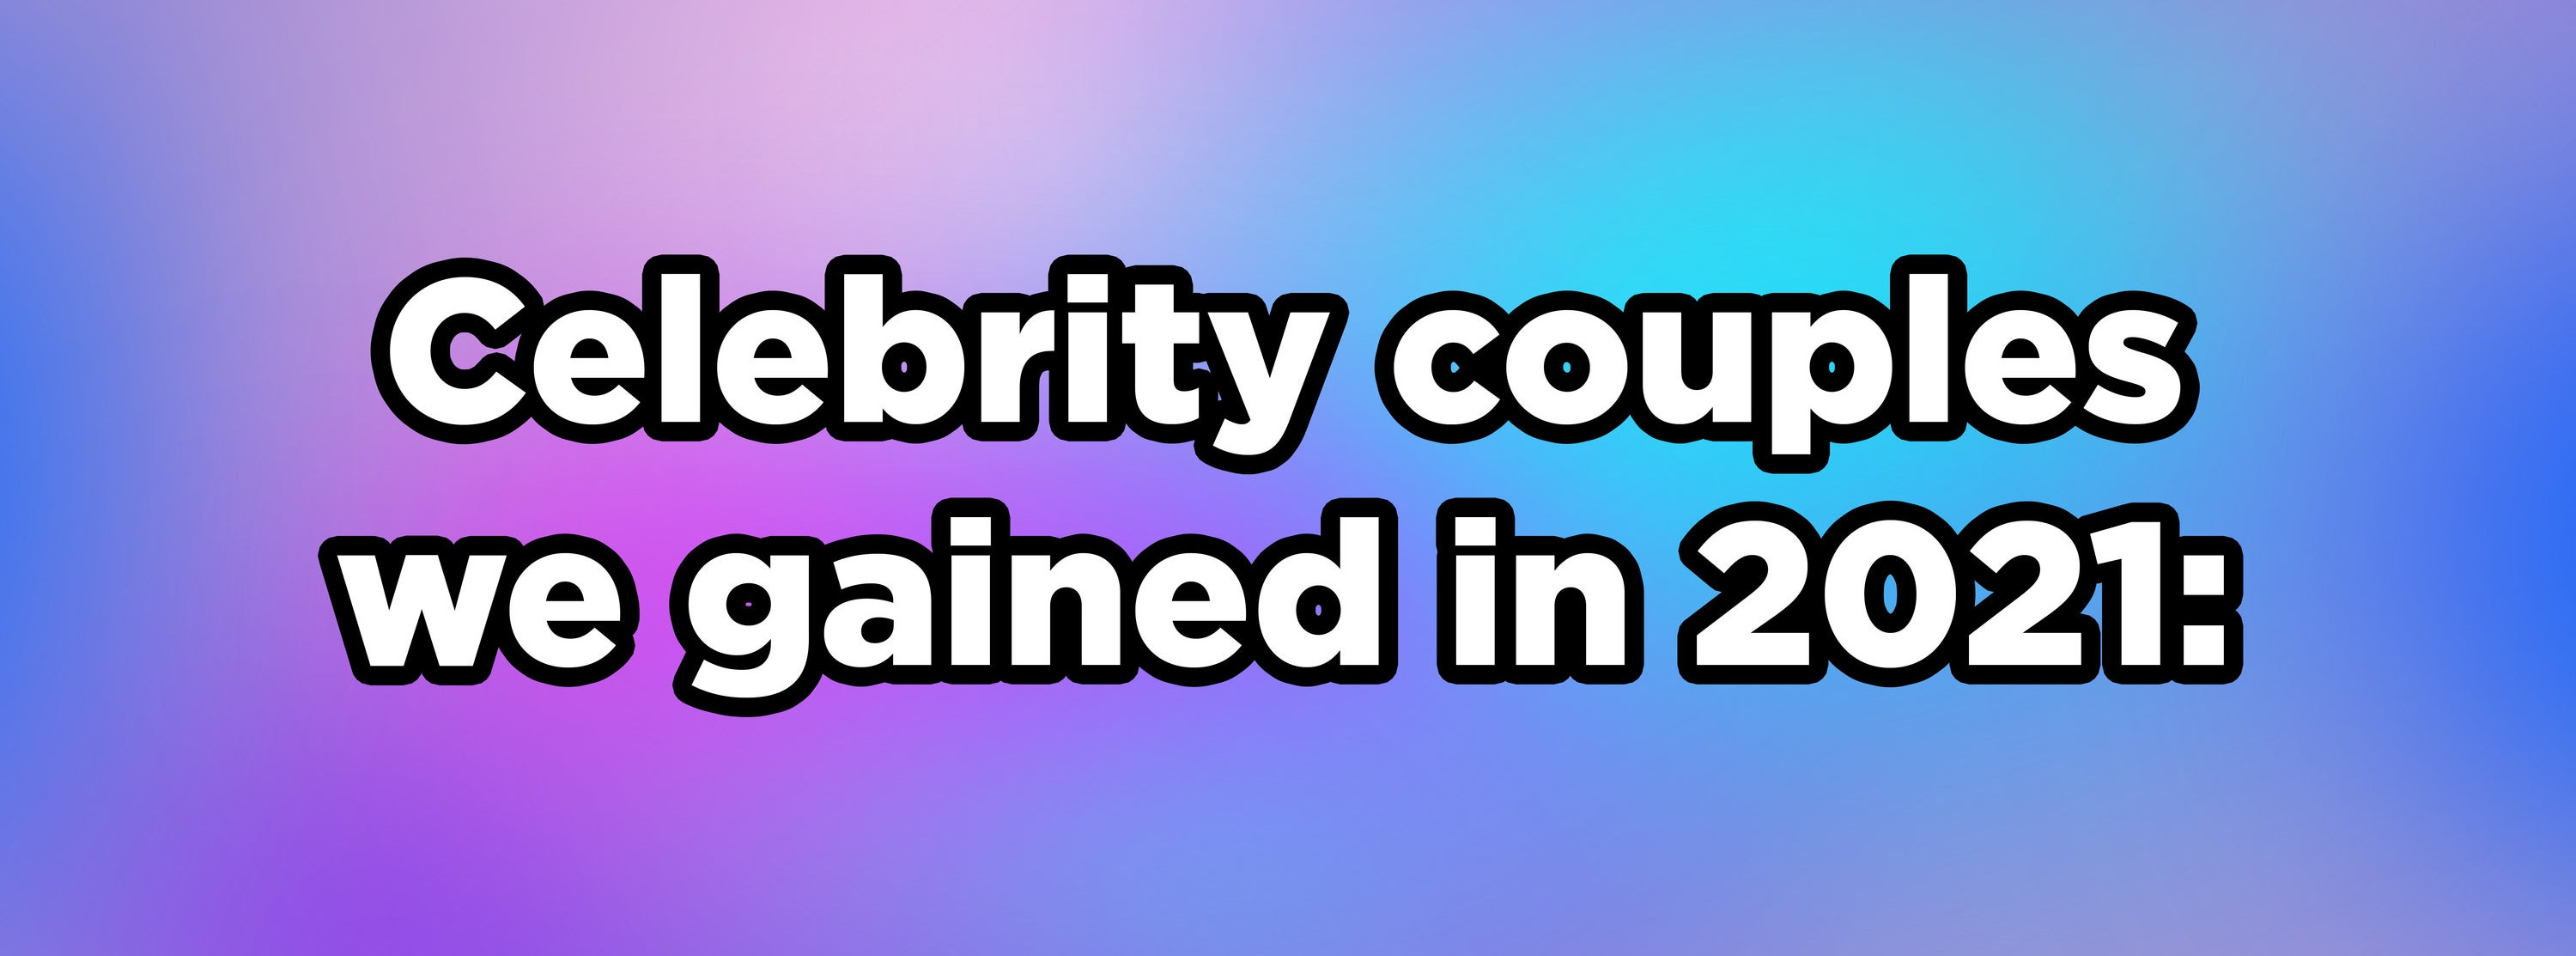 Celebrity couples we gained in 2021